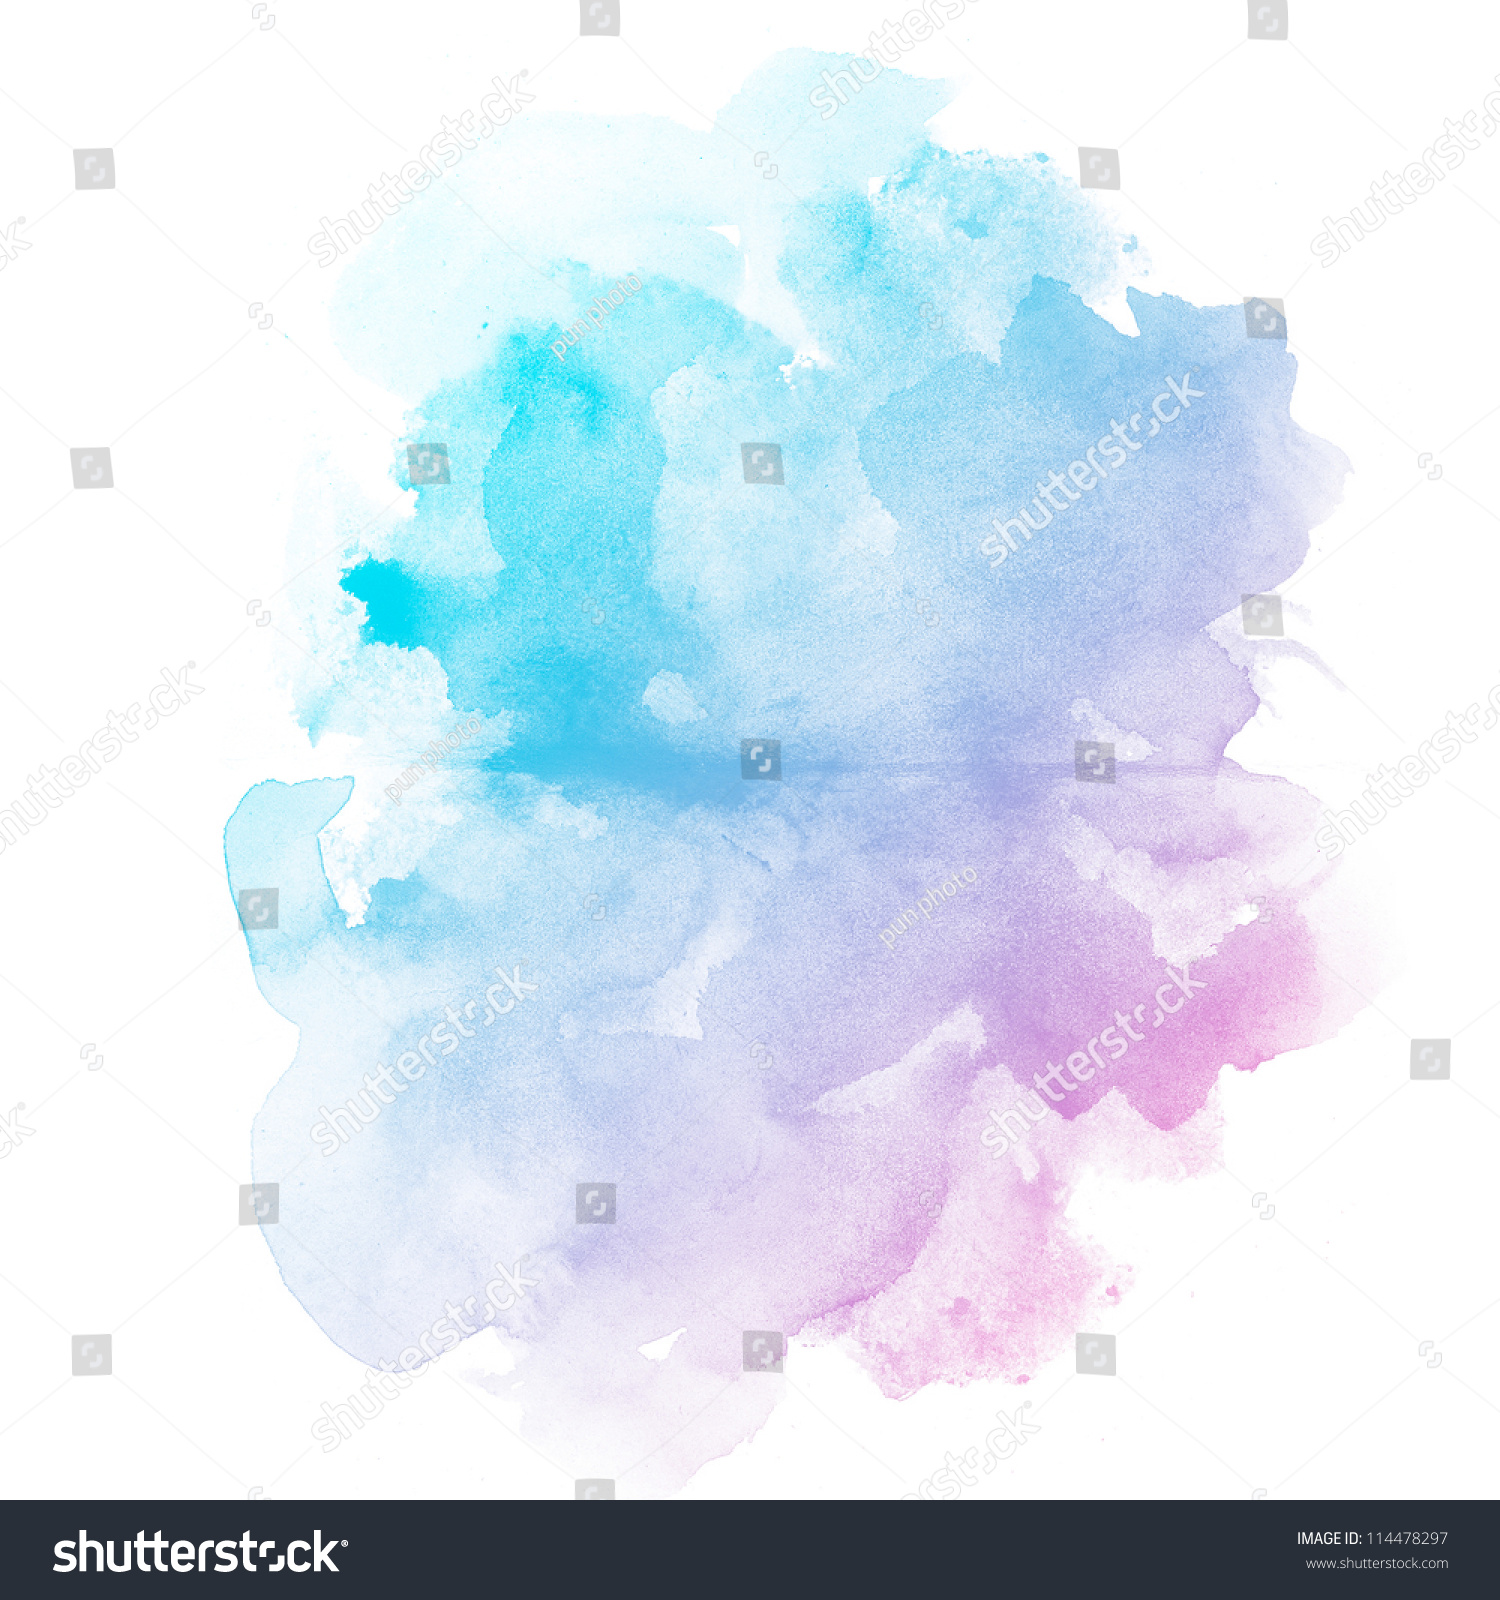 Abstract watercolor art hand paint on stock illustration for Watercolor paintings of hands